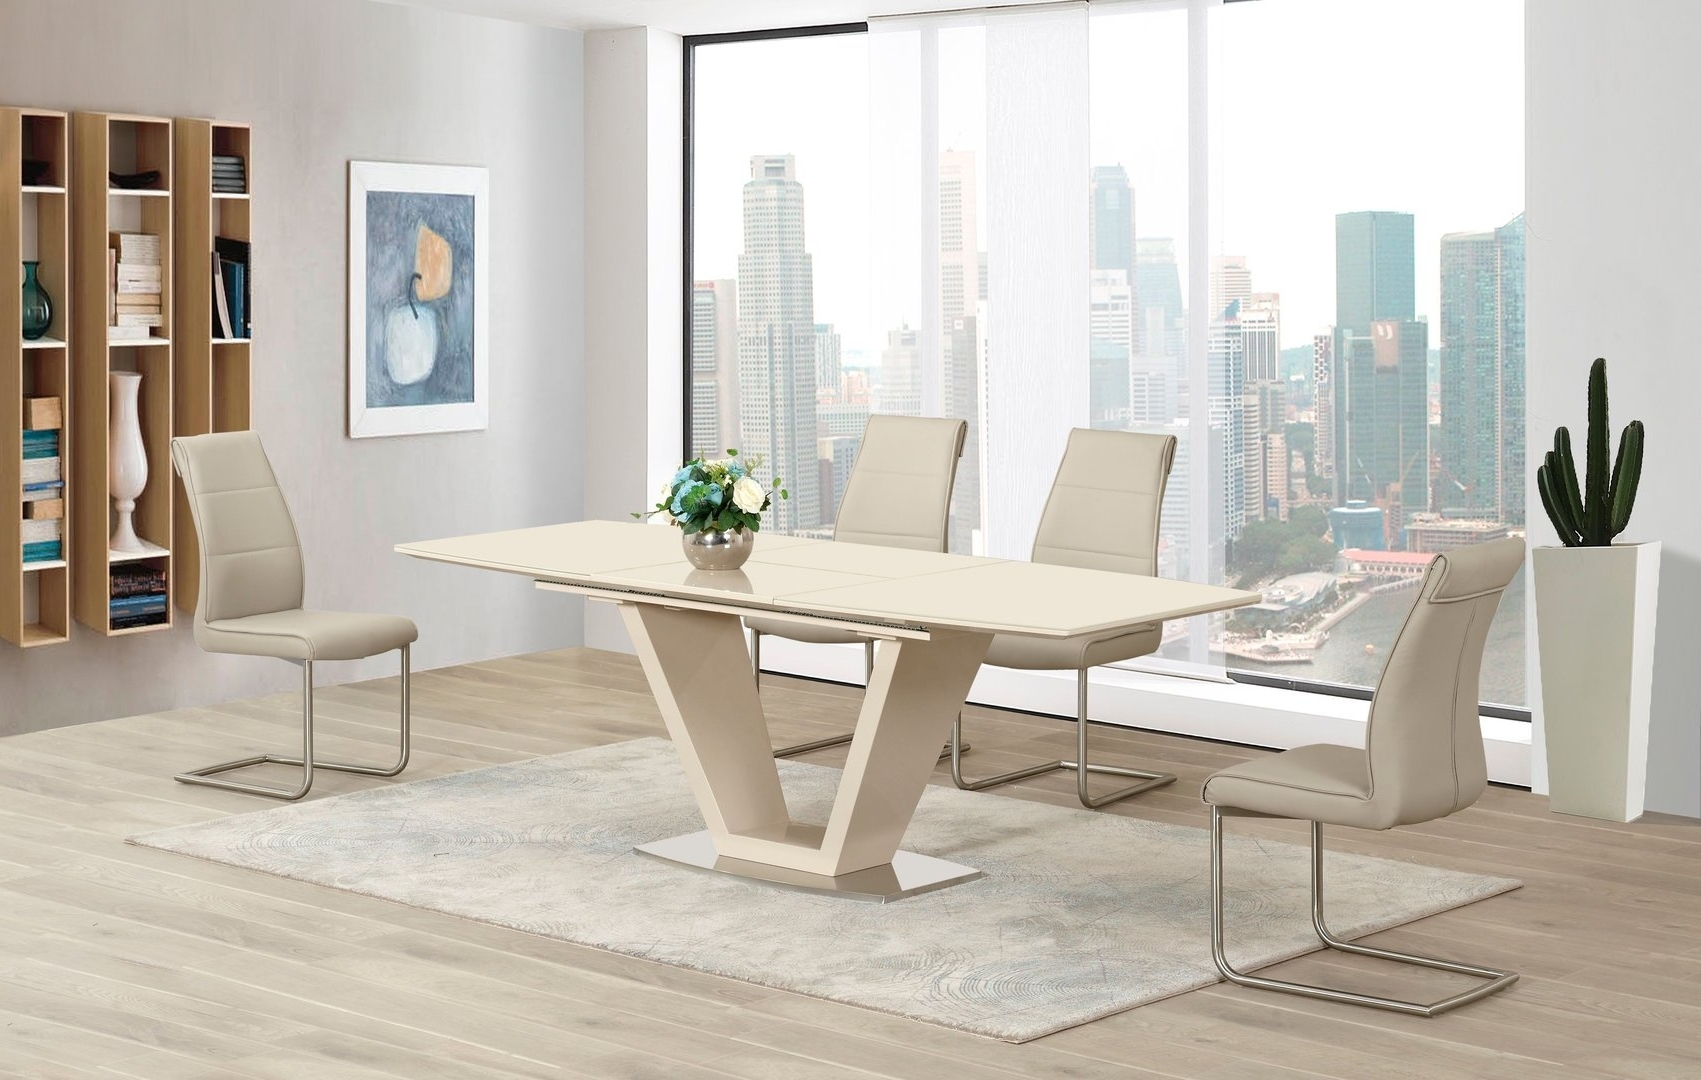 Cream Extending Glass High Gloss Dining Table And 6 Taupe Chairs Regarding Most Current Black Gloss Dining Tables And 6 Chairs (View 19 of 25)